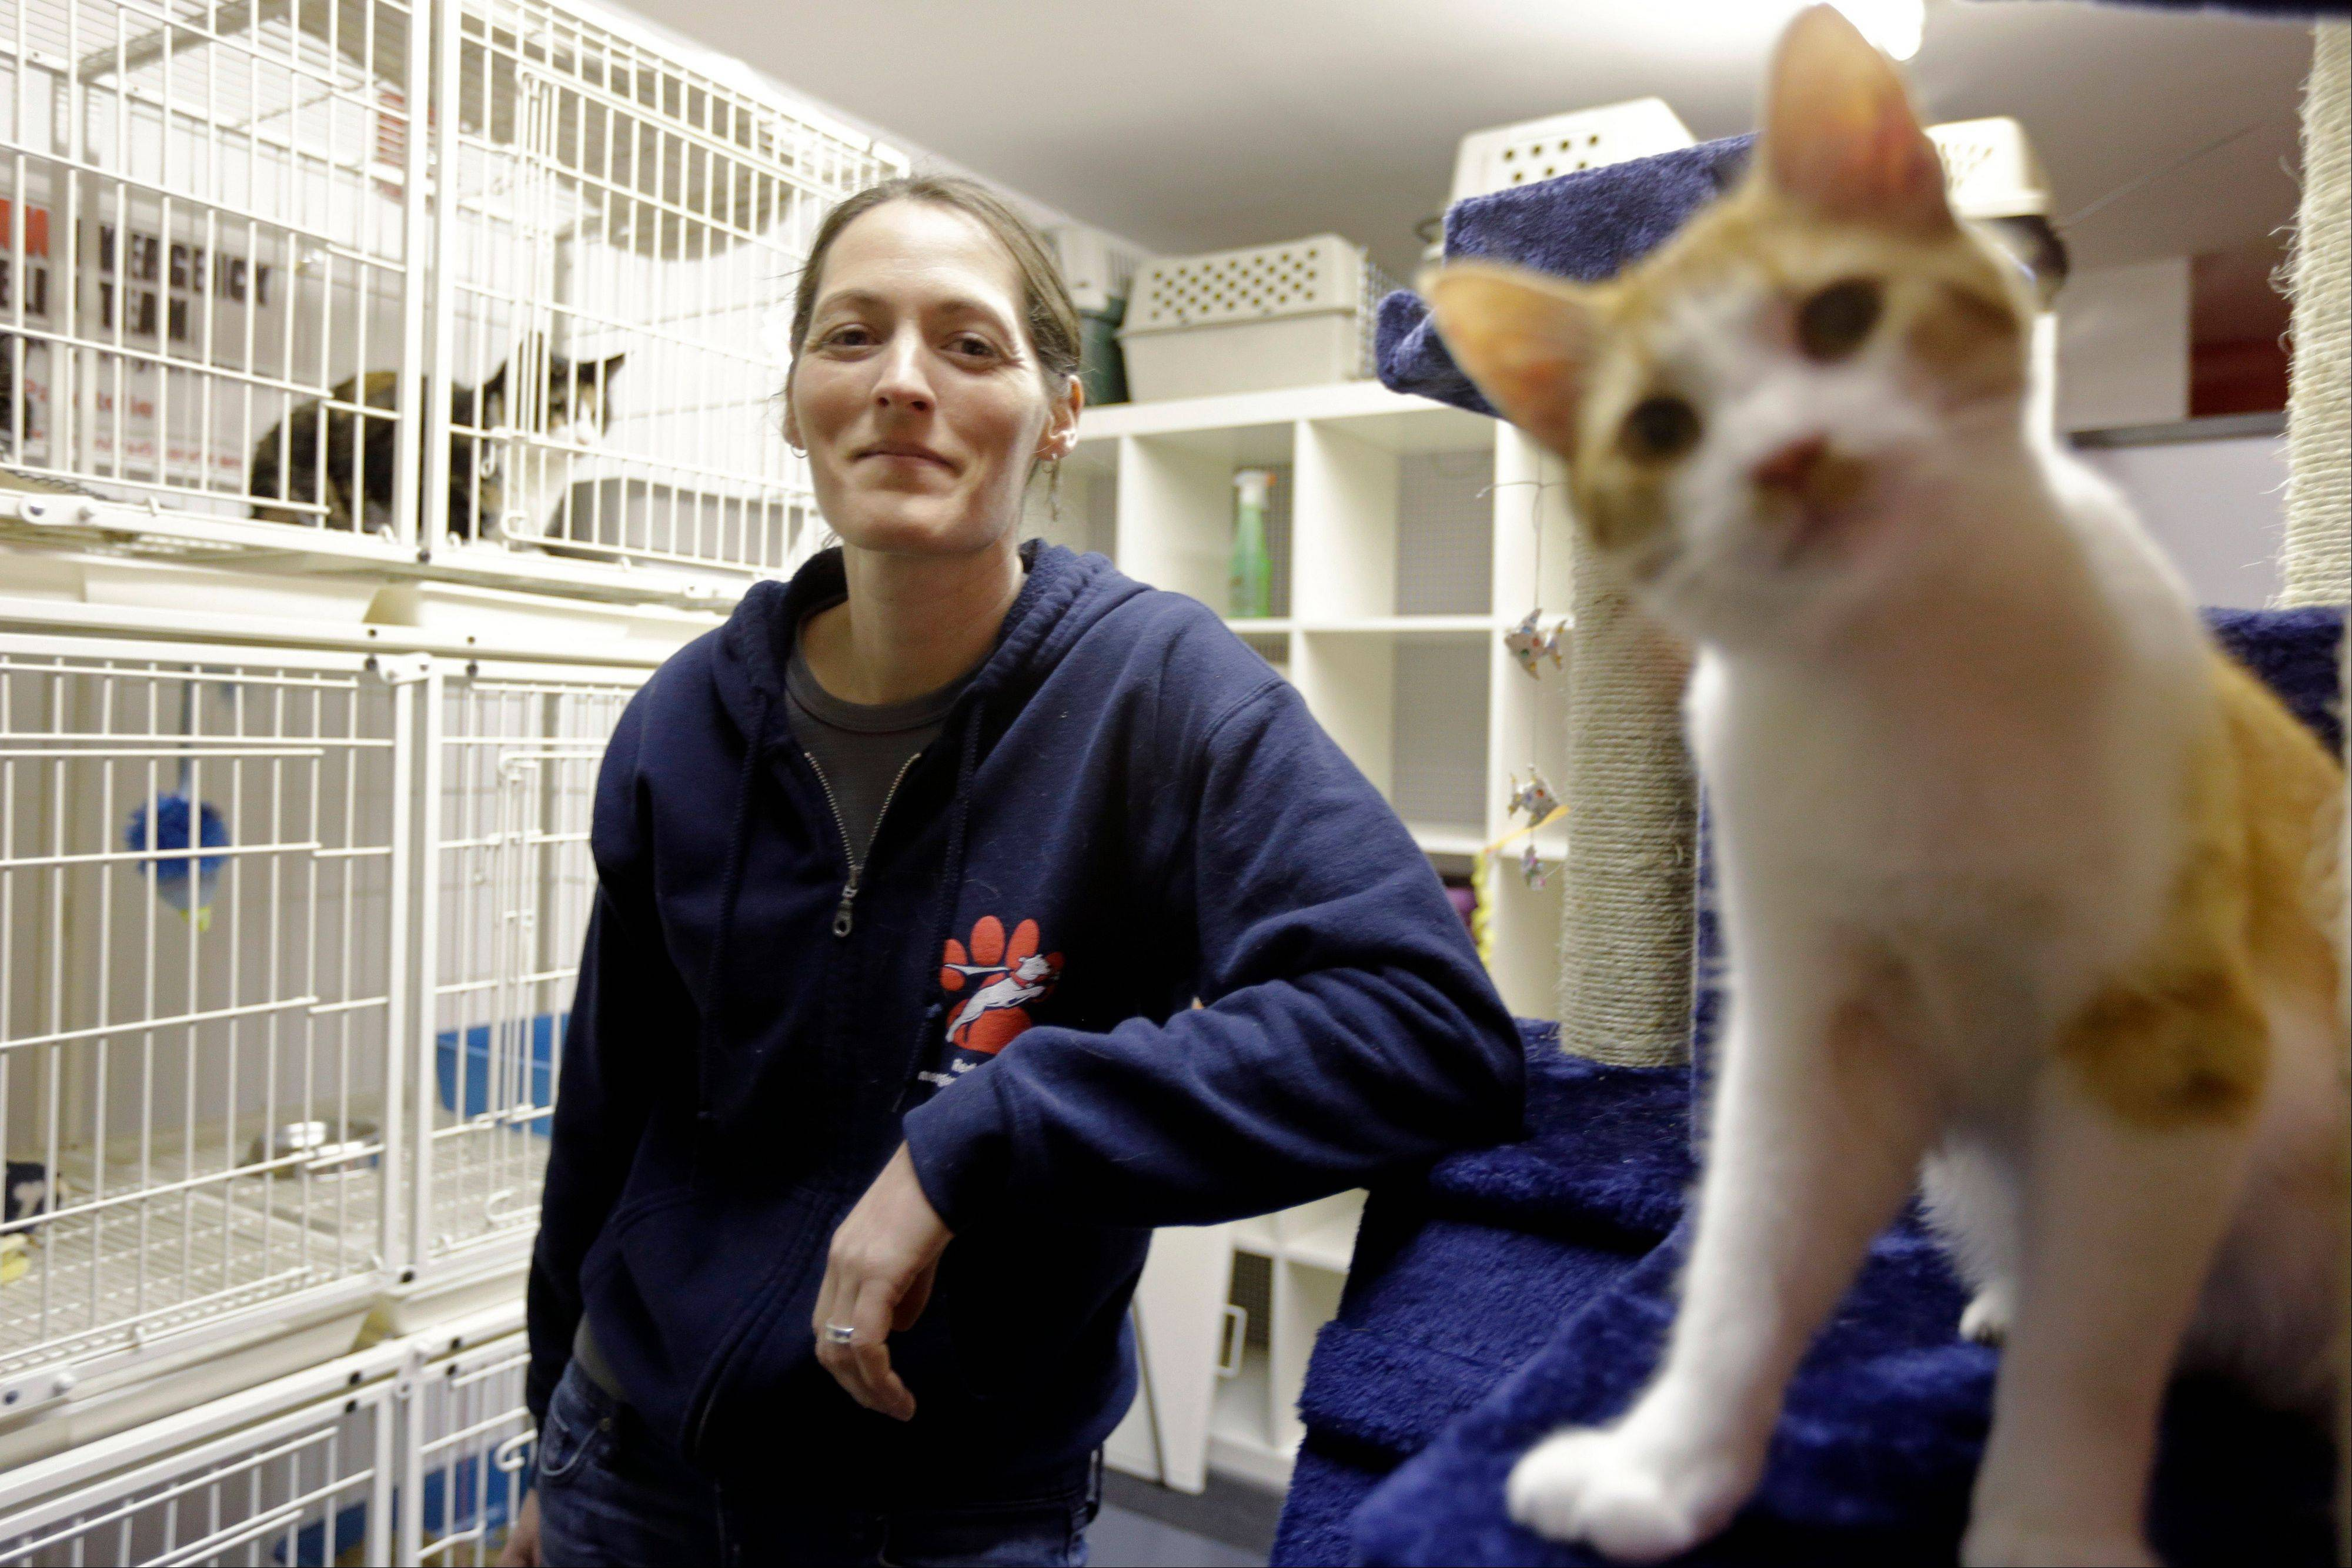 Red Paw founder Jen Leary poses March 28 at their adoption facility in Philadelphia, with kittens displaced due to fires. The emergency relief service Red Paw has paired with the local Red Cross to care for animals displaced by flames, floods or other residential disasters, with the goal of eventually reuniting them with their owners.